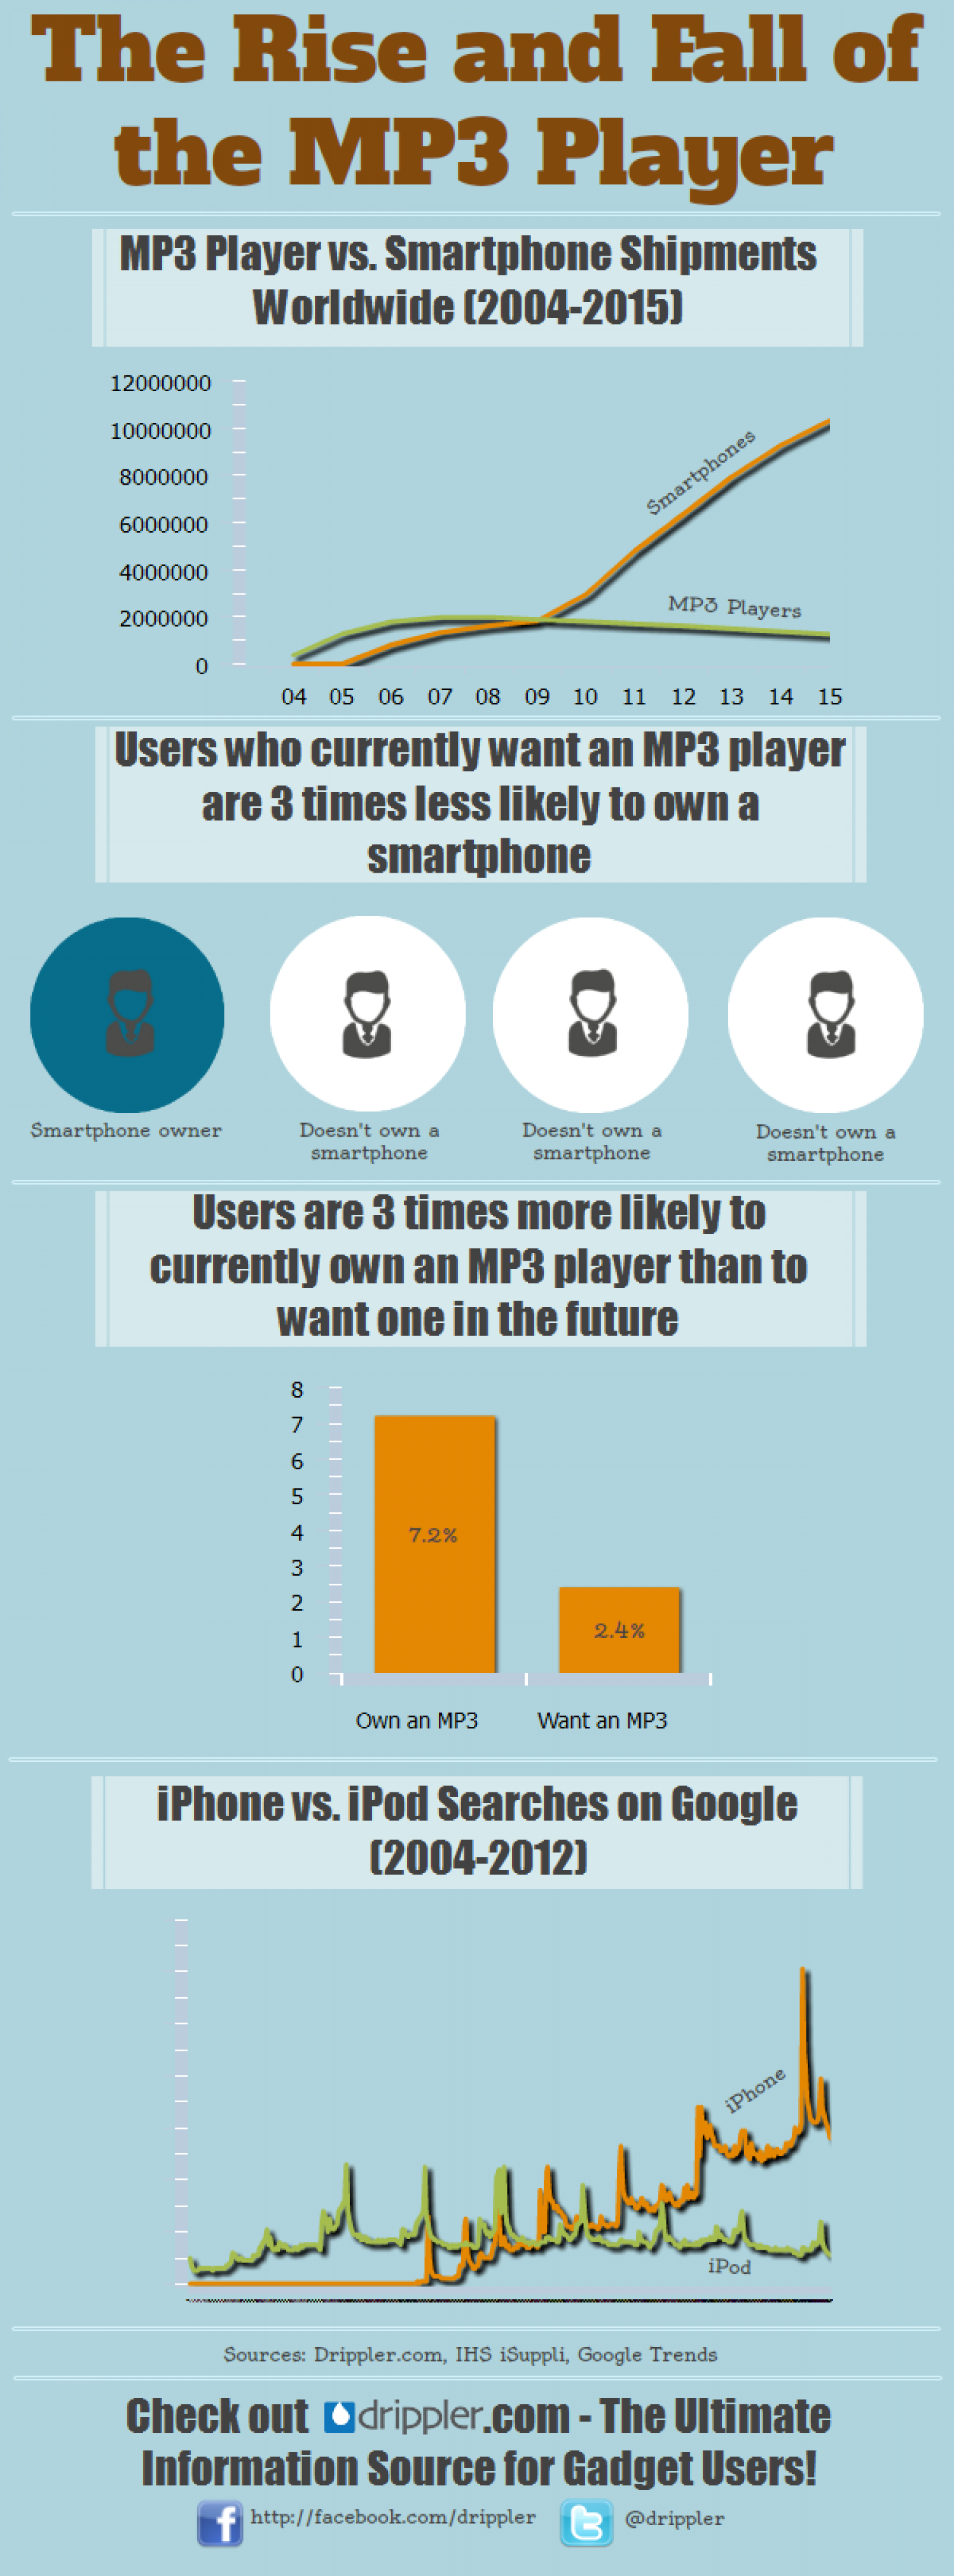 The Rise and Fall of MP3 Players Infographic